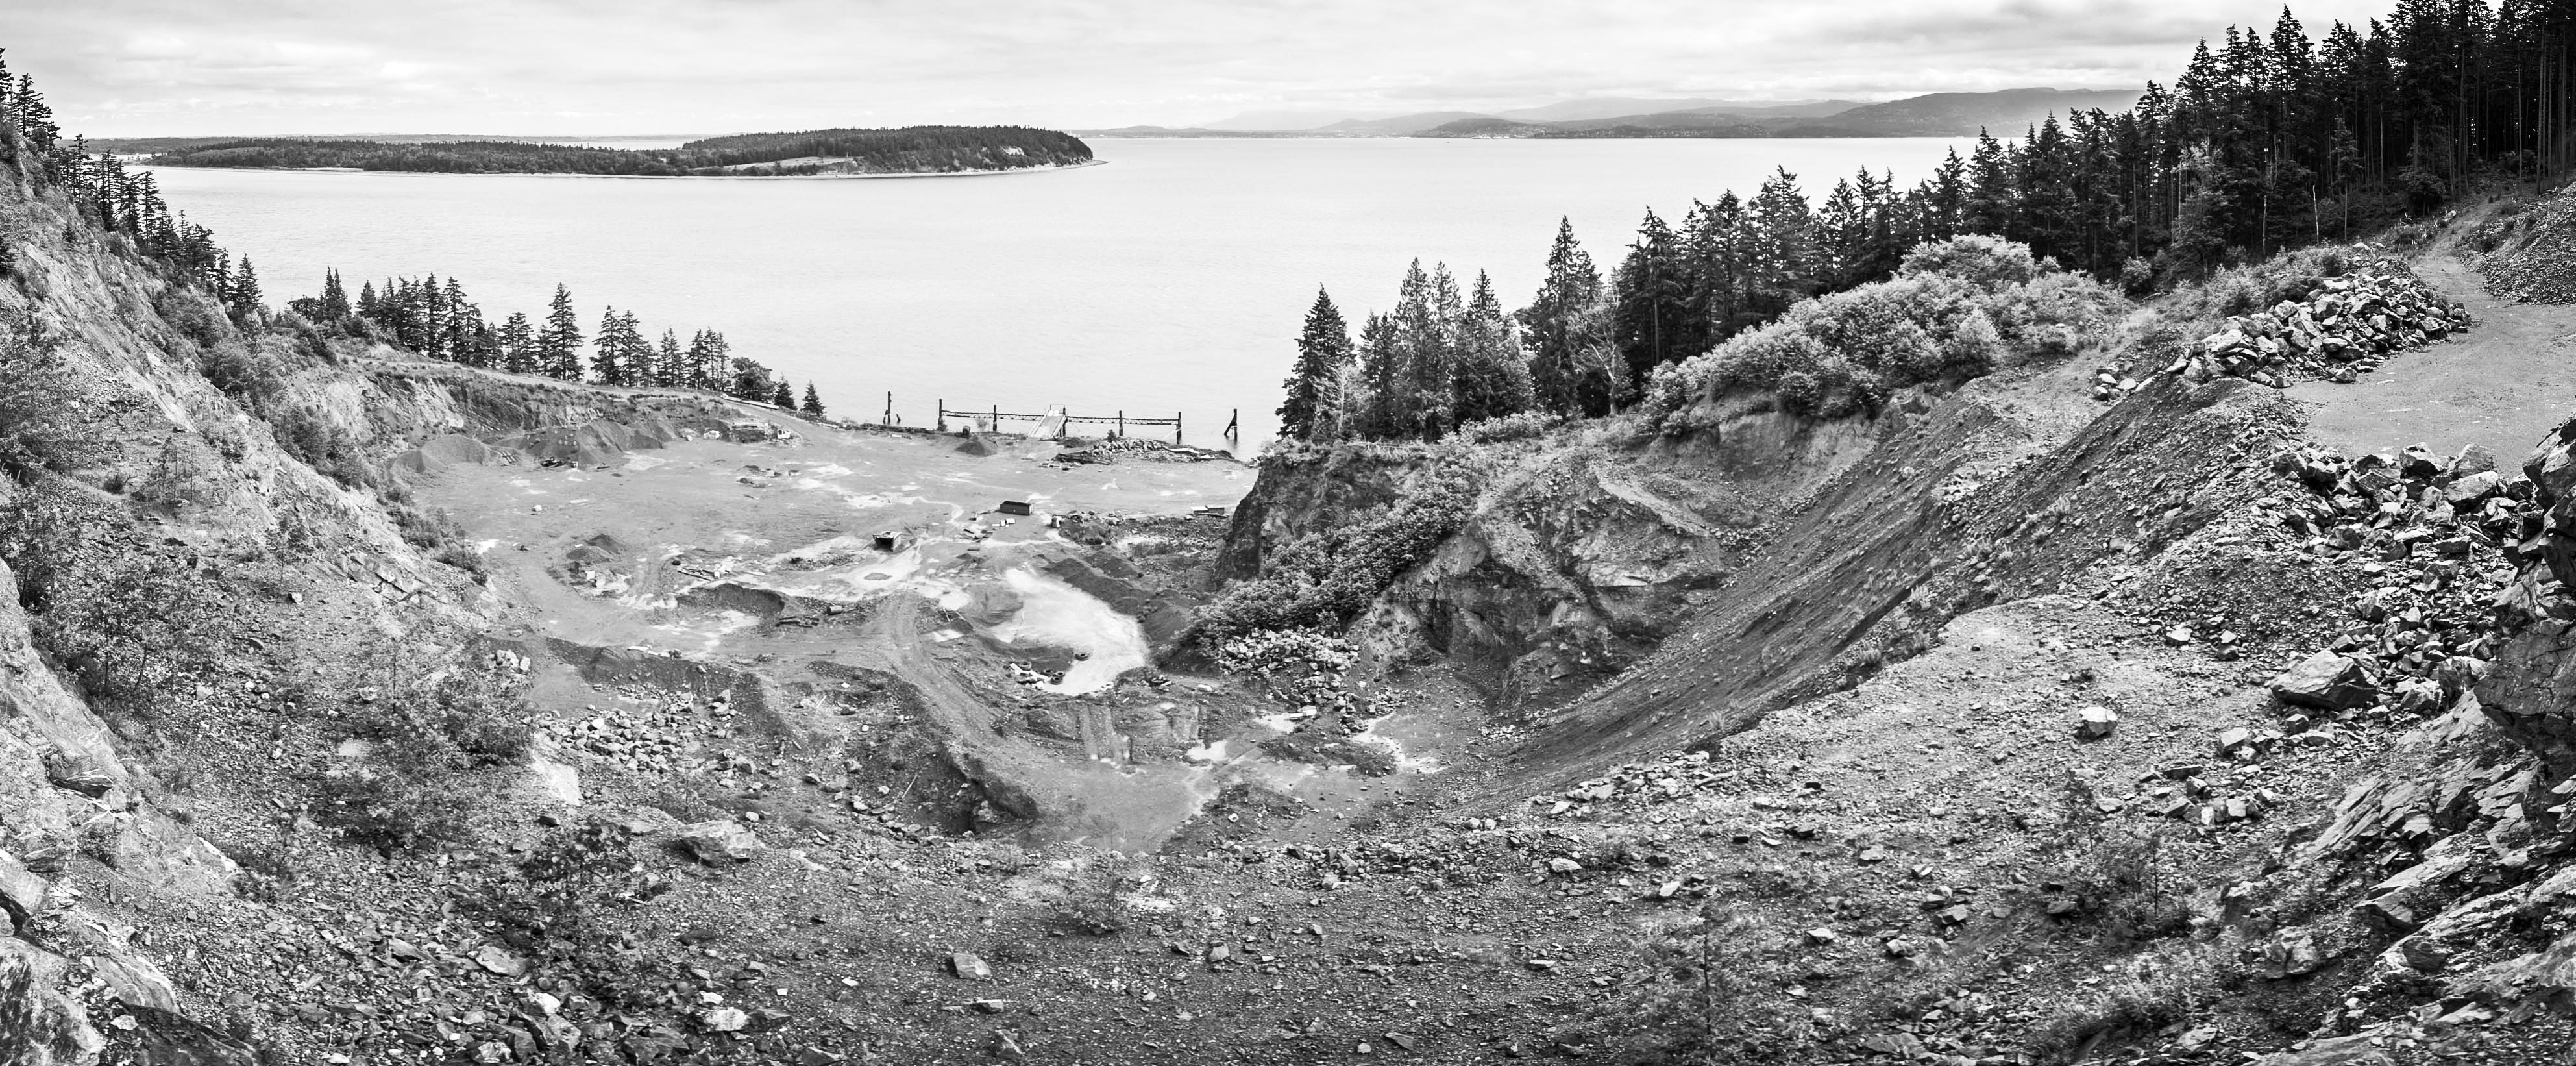 In the future when restoration efforts are complete, visitors will be able to enjoy spectacular views from the upland area of the 105 acre Aiston Preserve looking east toward Portage Island, Bellingham Bay, the Chuckanut Mountains and Mt. Baker. Photo: Ed Lowe